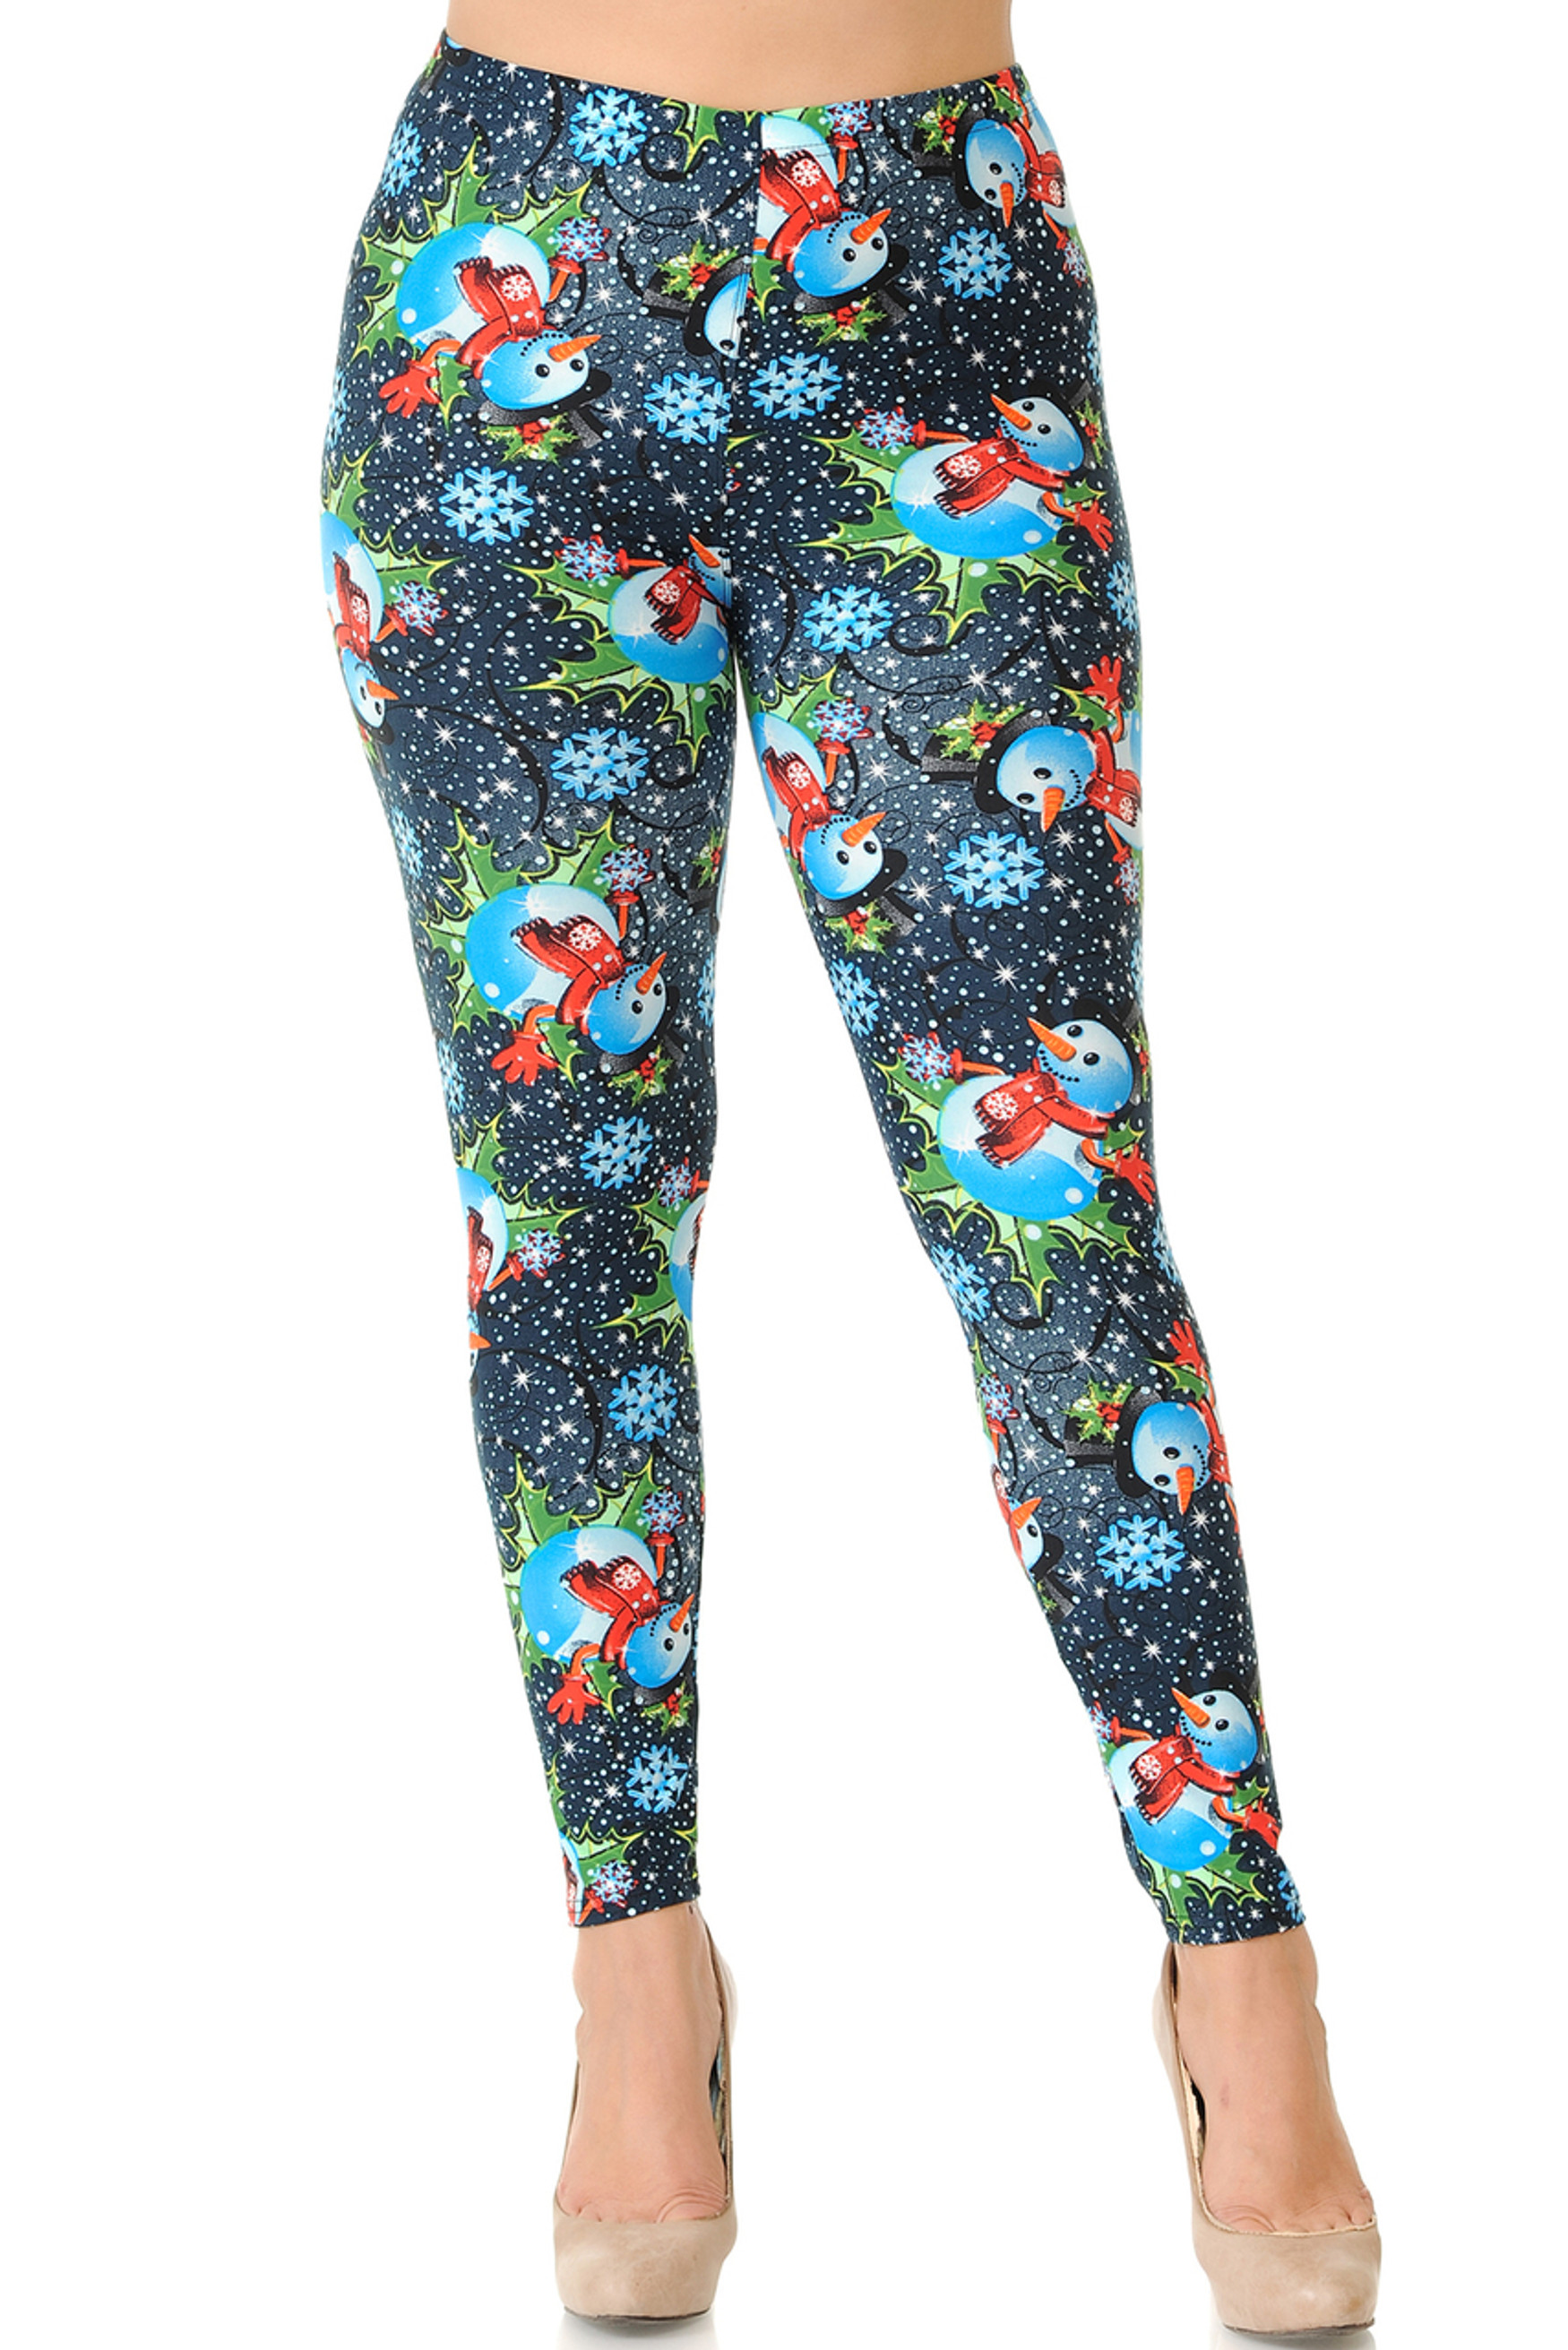 Brushed Frosty Blue Snowman Christmas Extra Plus Size Leggings - 3X-5X